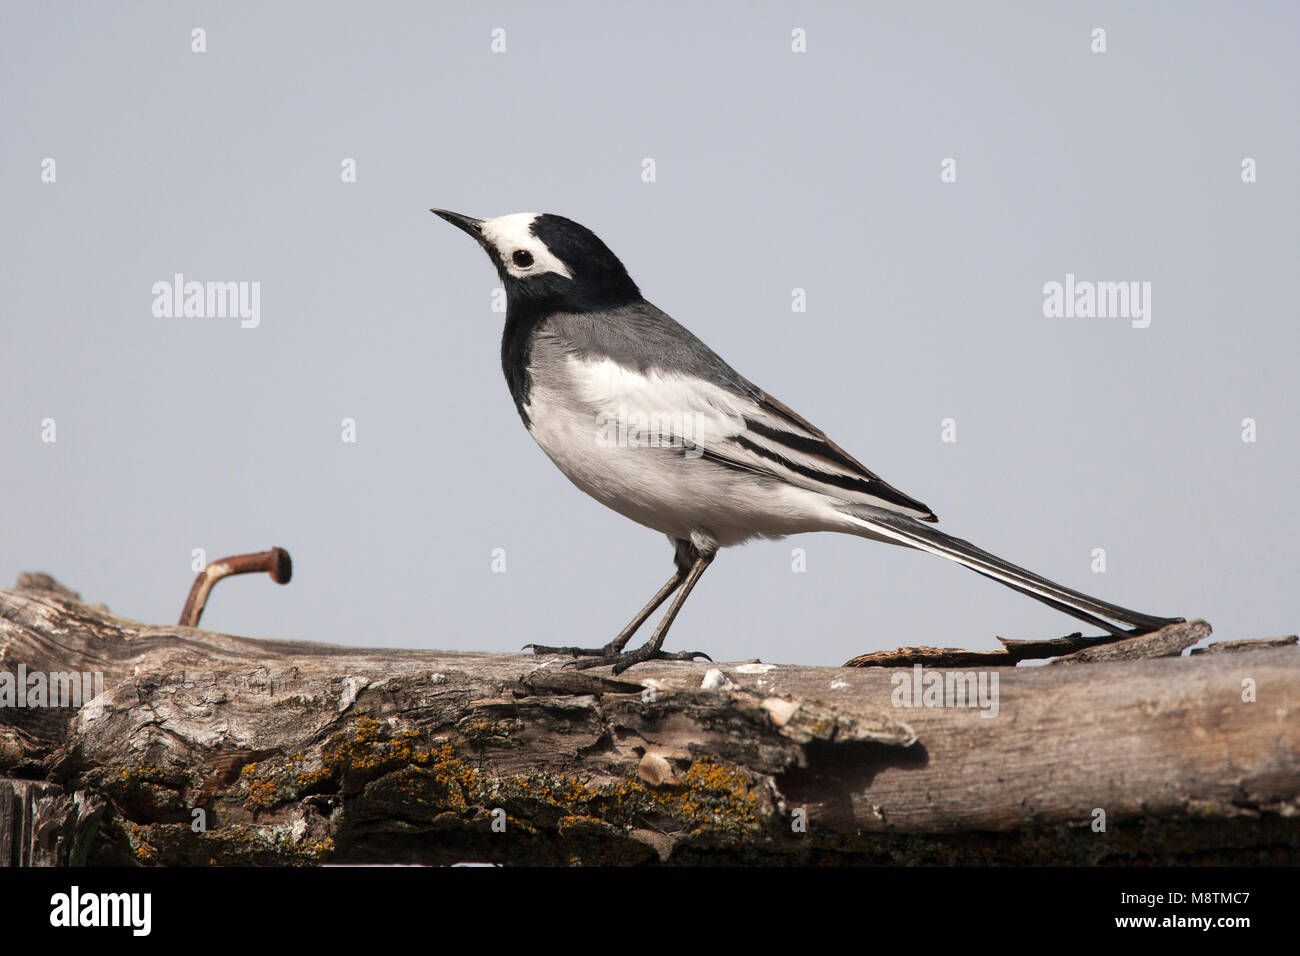 Maskerkwikstaart zittend op tak; Masked Wagtail perched on branch - Stock Image